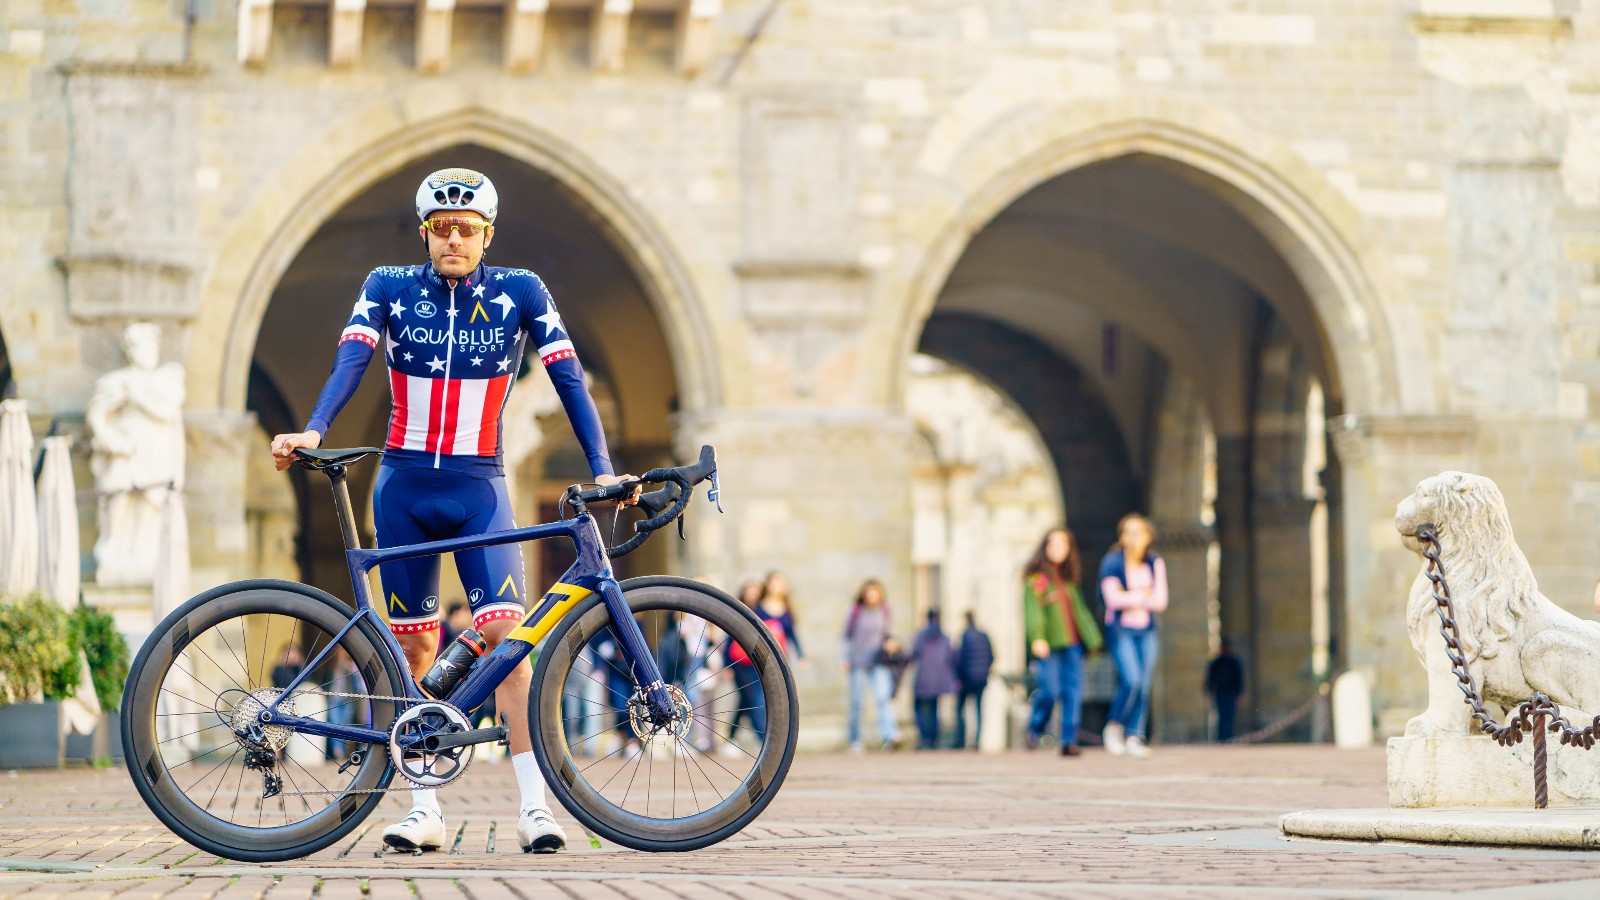 Warbasse shows off his new bike